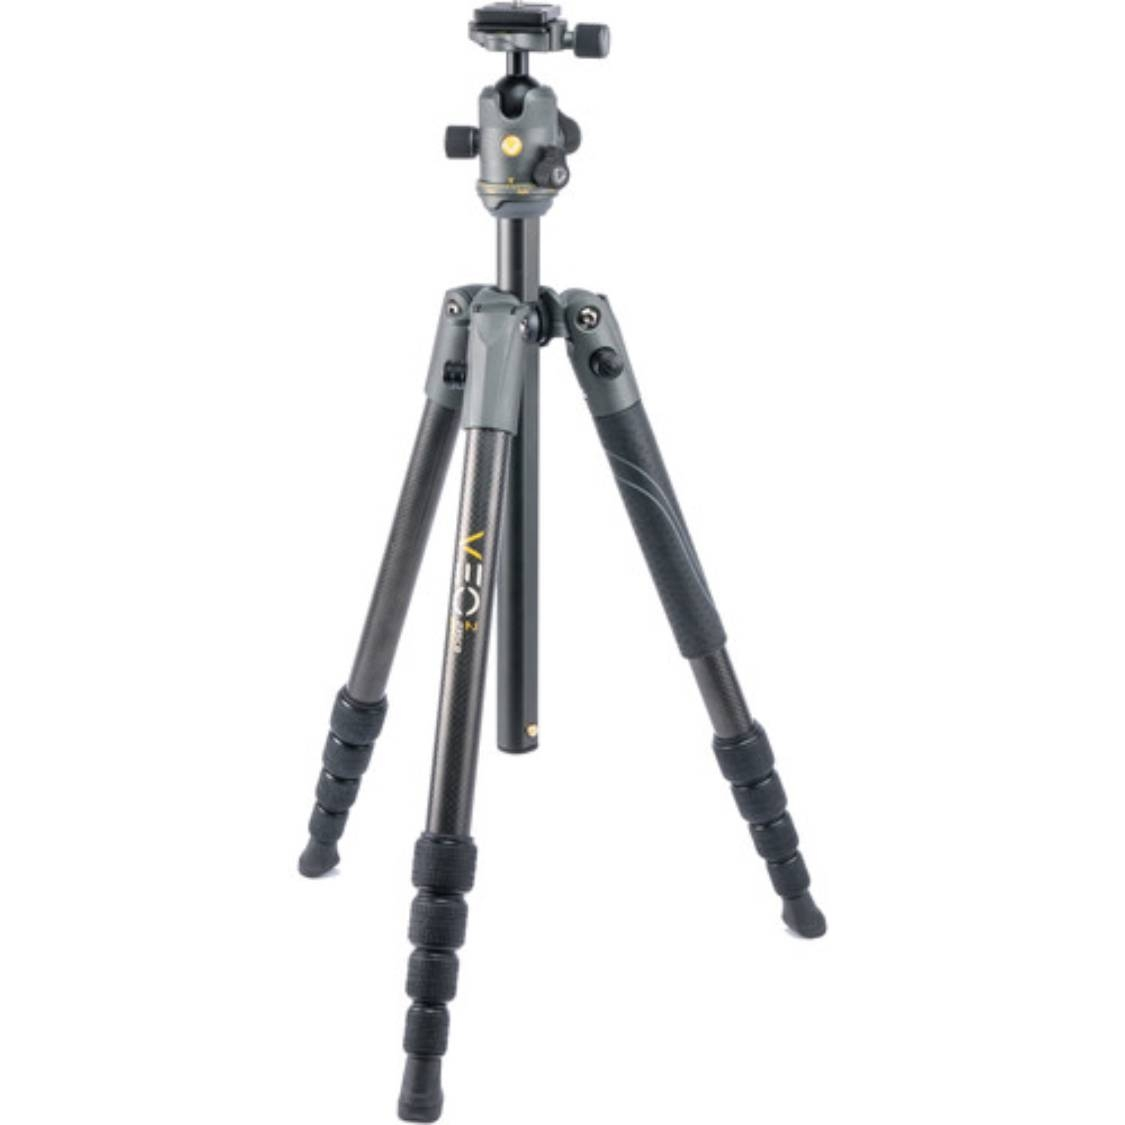 Vanguard VEO 2 235AB Carbon Fiber Tripod with BH-50 Ball Head